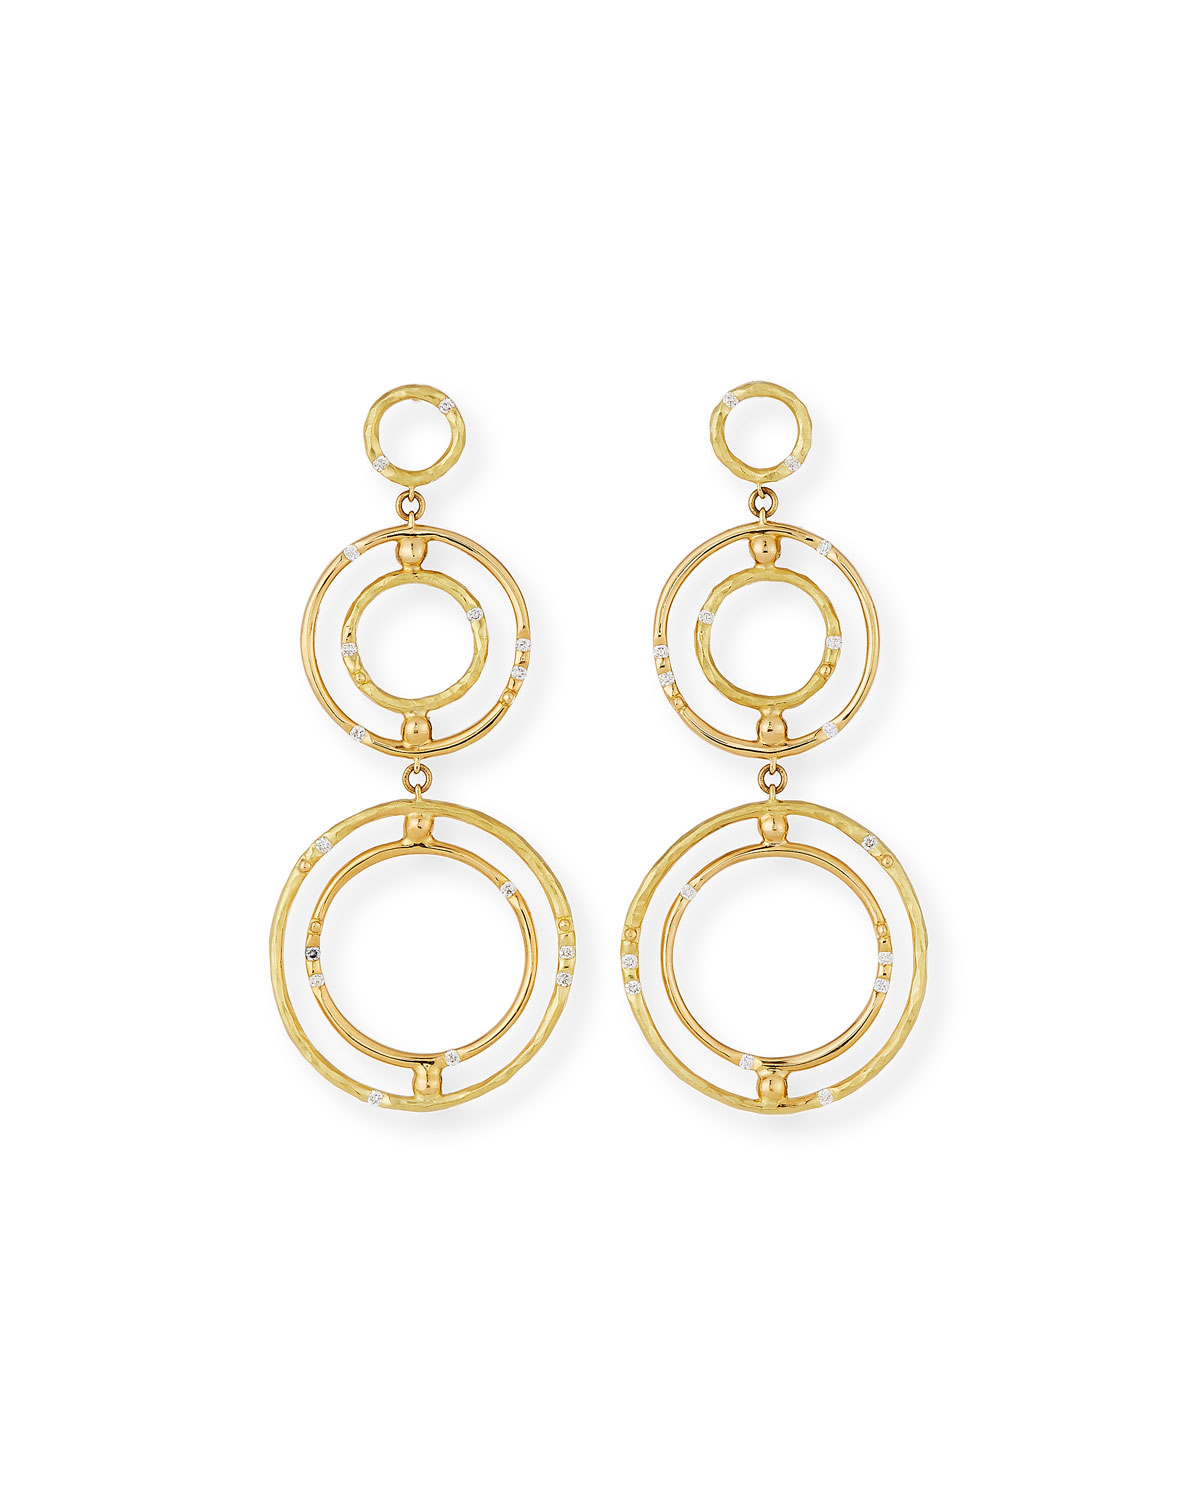 VENDORAFA BAMBOO 18K CIRCLE DROP EARRINGS WITH DIAMONDS